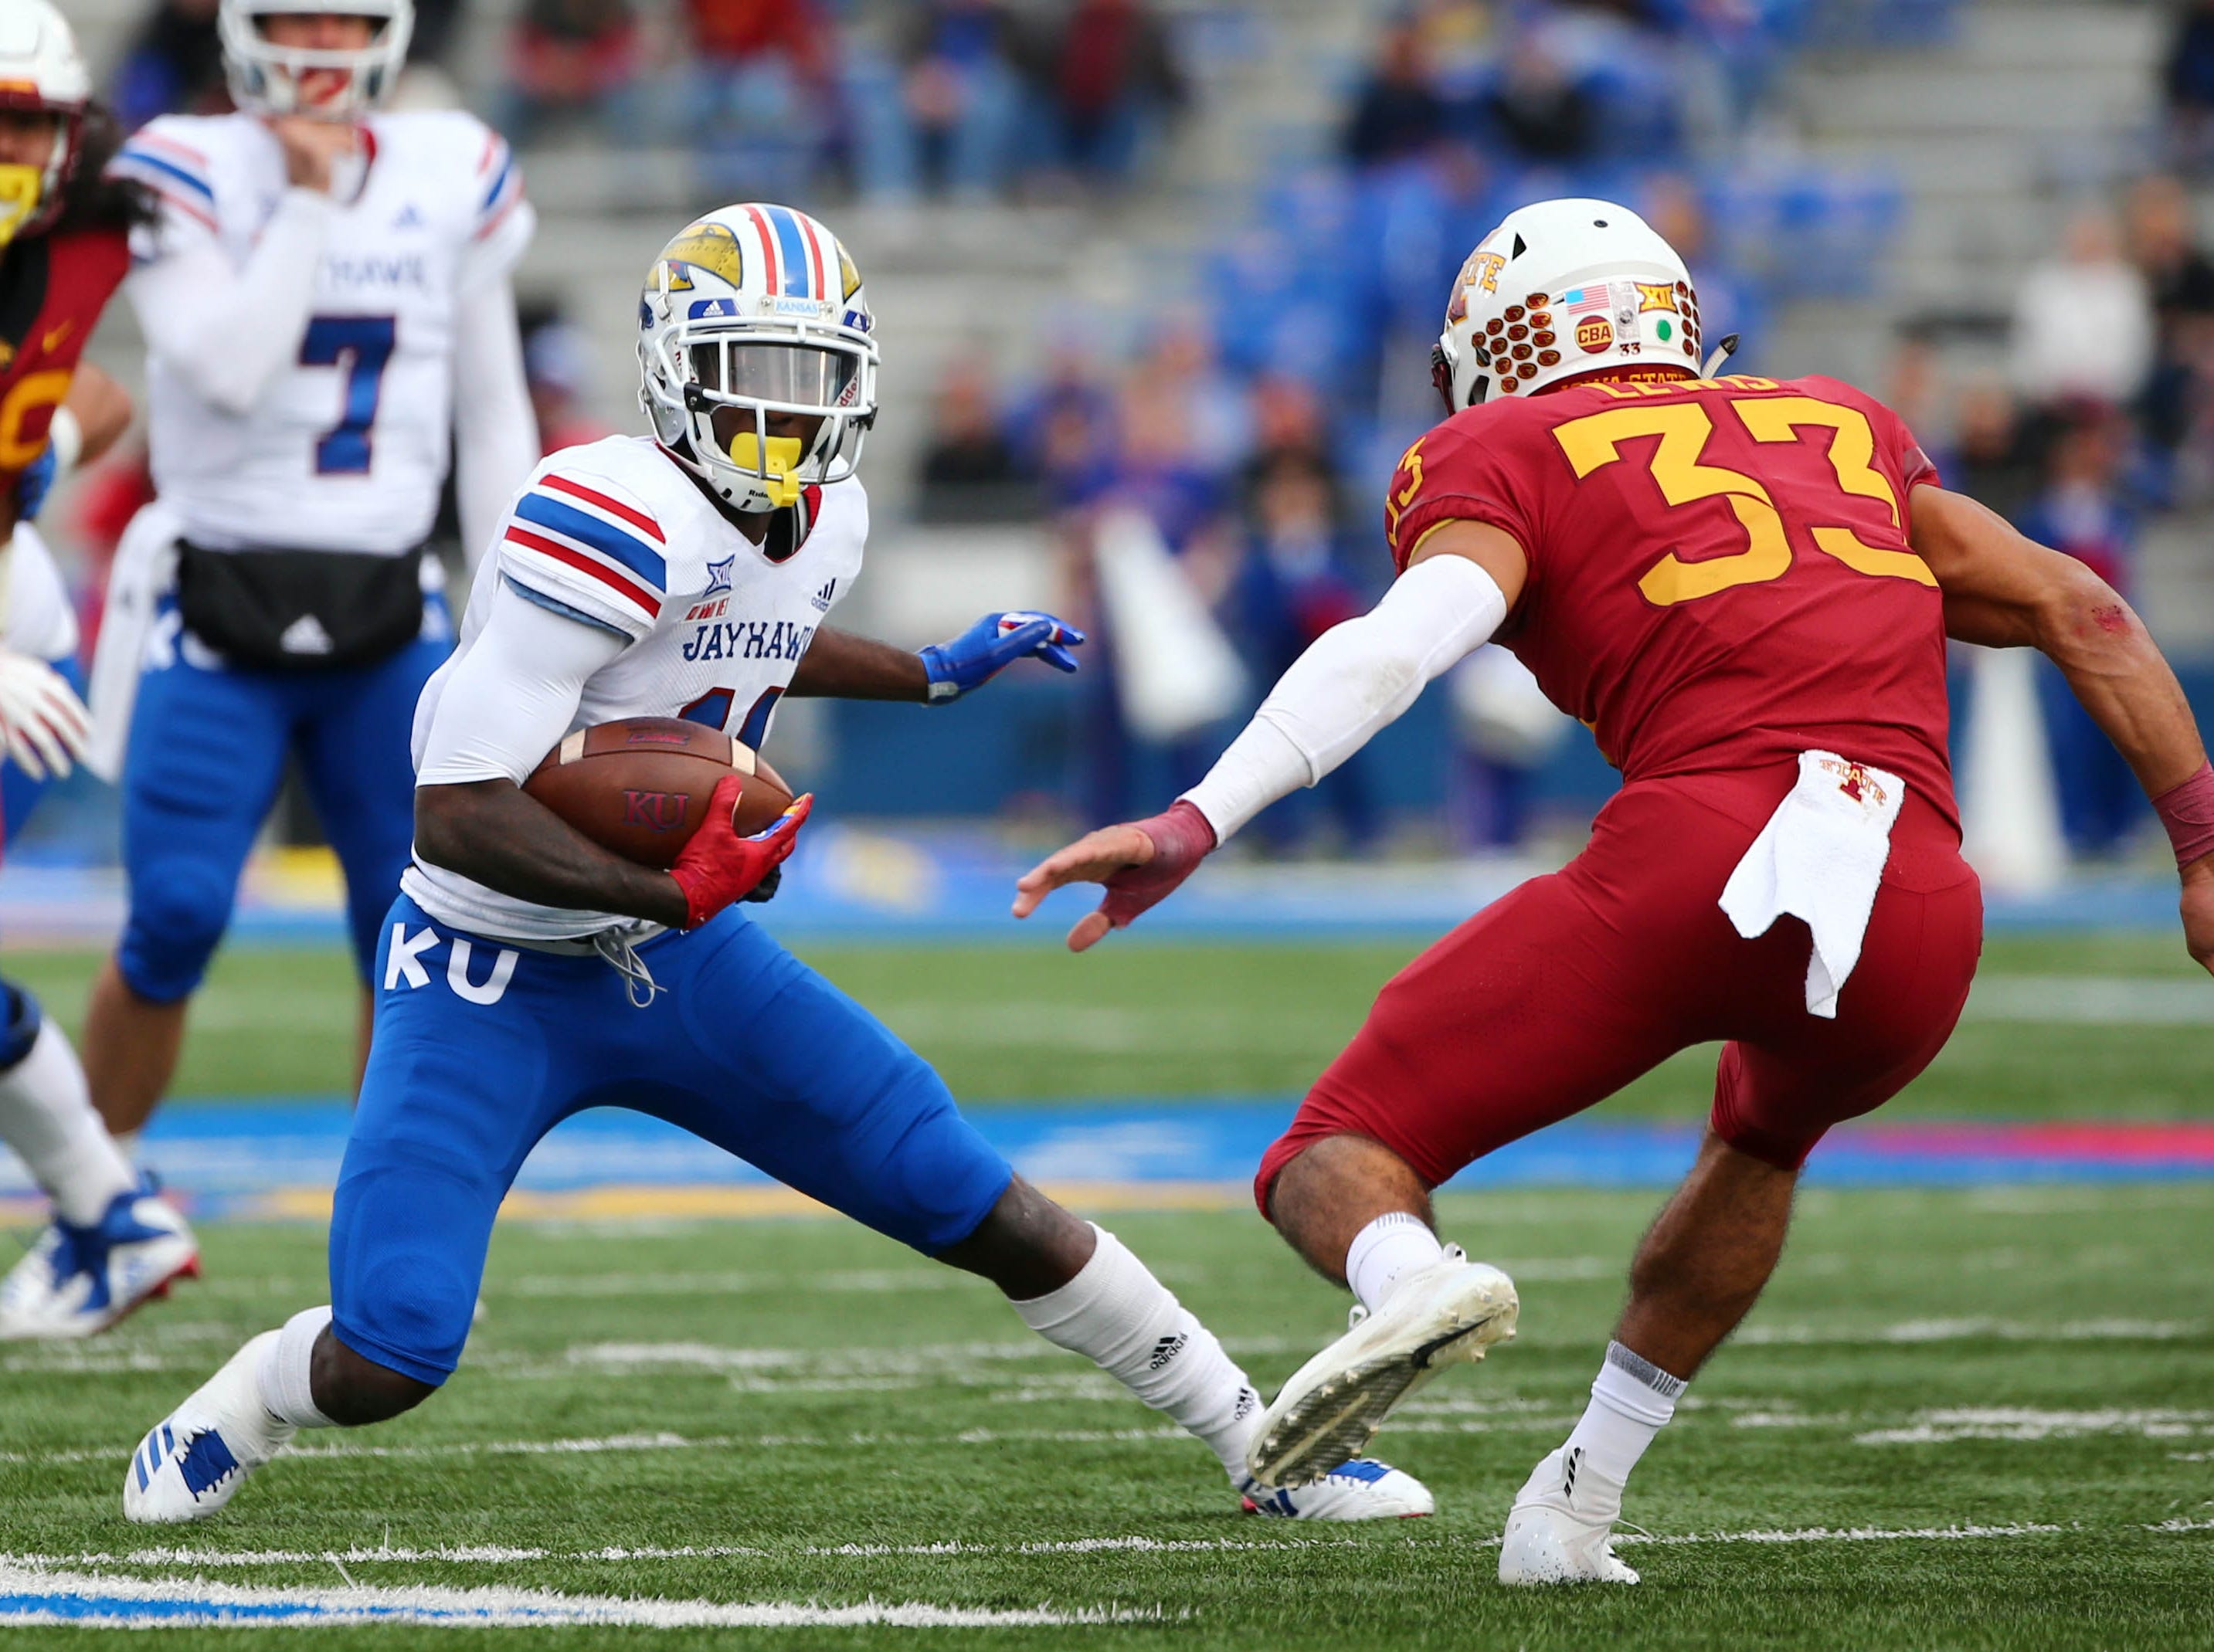 Nov 3, 2018; Lawrence, KS, USA; Kansas Jayhawks wide receiver Steven Sims Jr. (11) runs against Iowa State Cyclones defensive back Braxton Lewis (33) in the first half at Memorial Stadium.